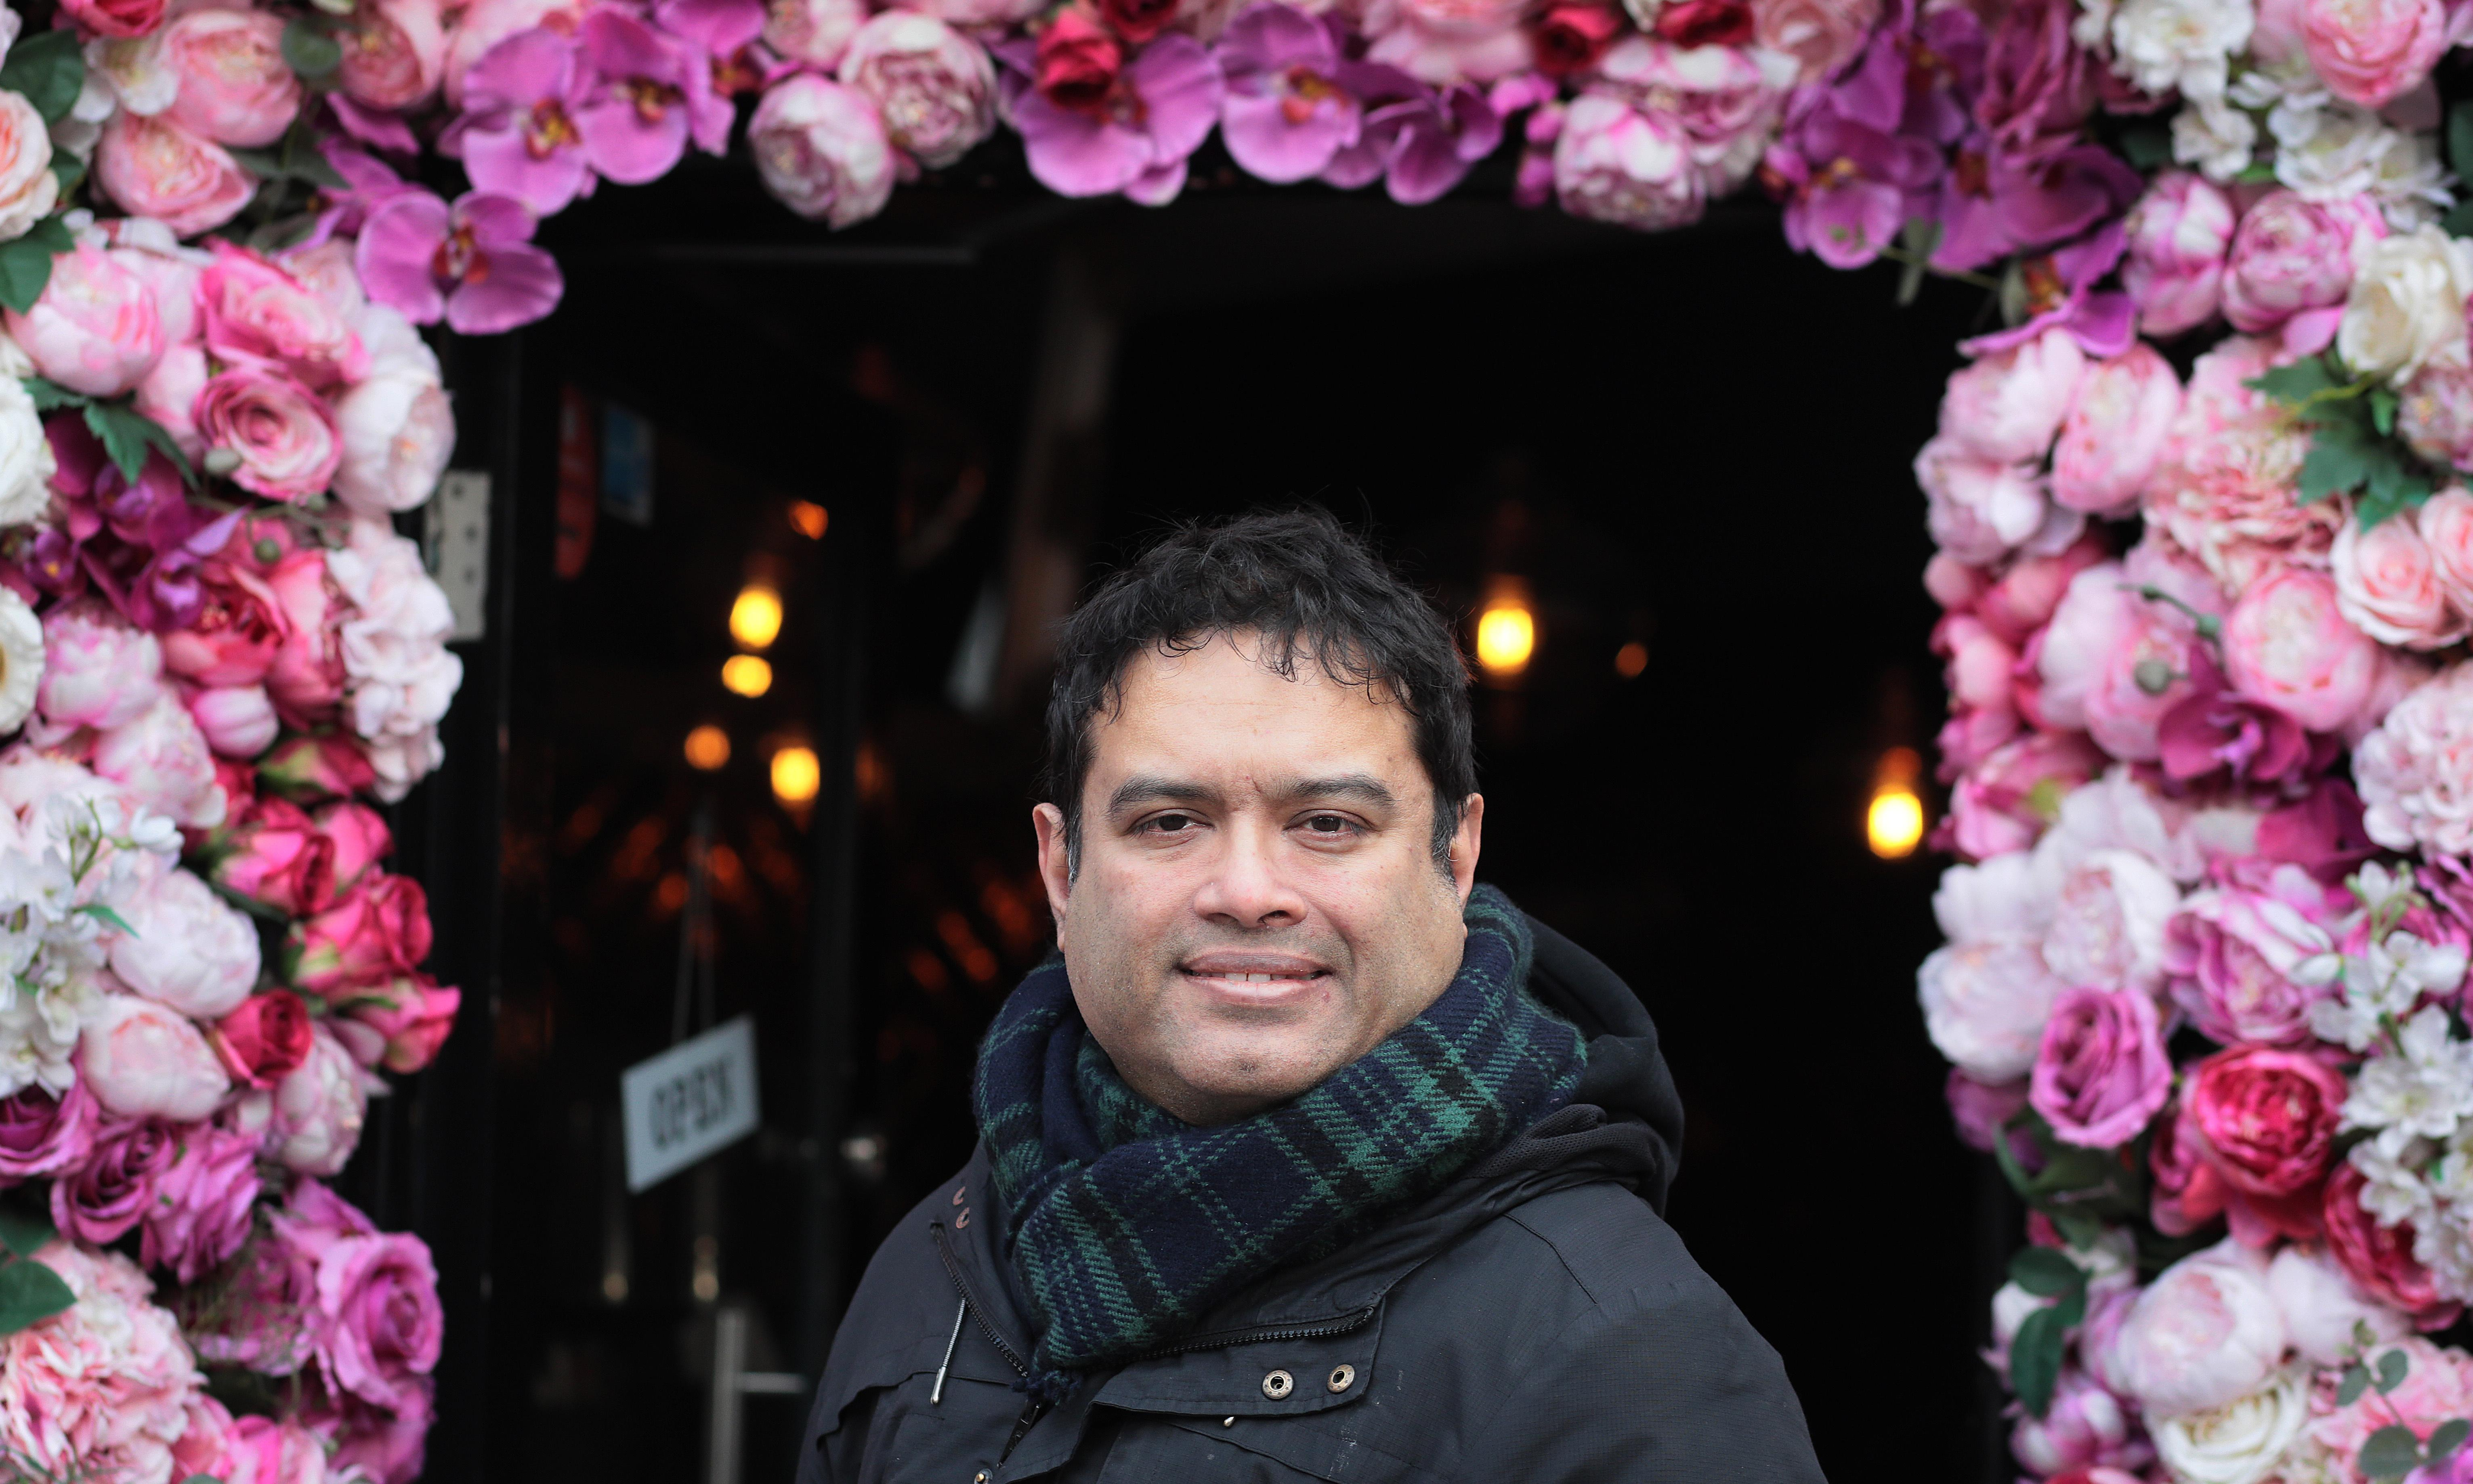 The Chase's Paul Sinha: 'I'm going for laughs in bleak places'